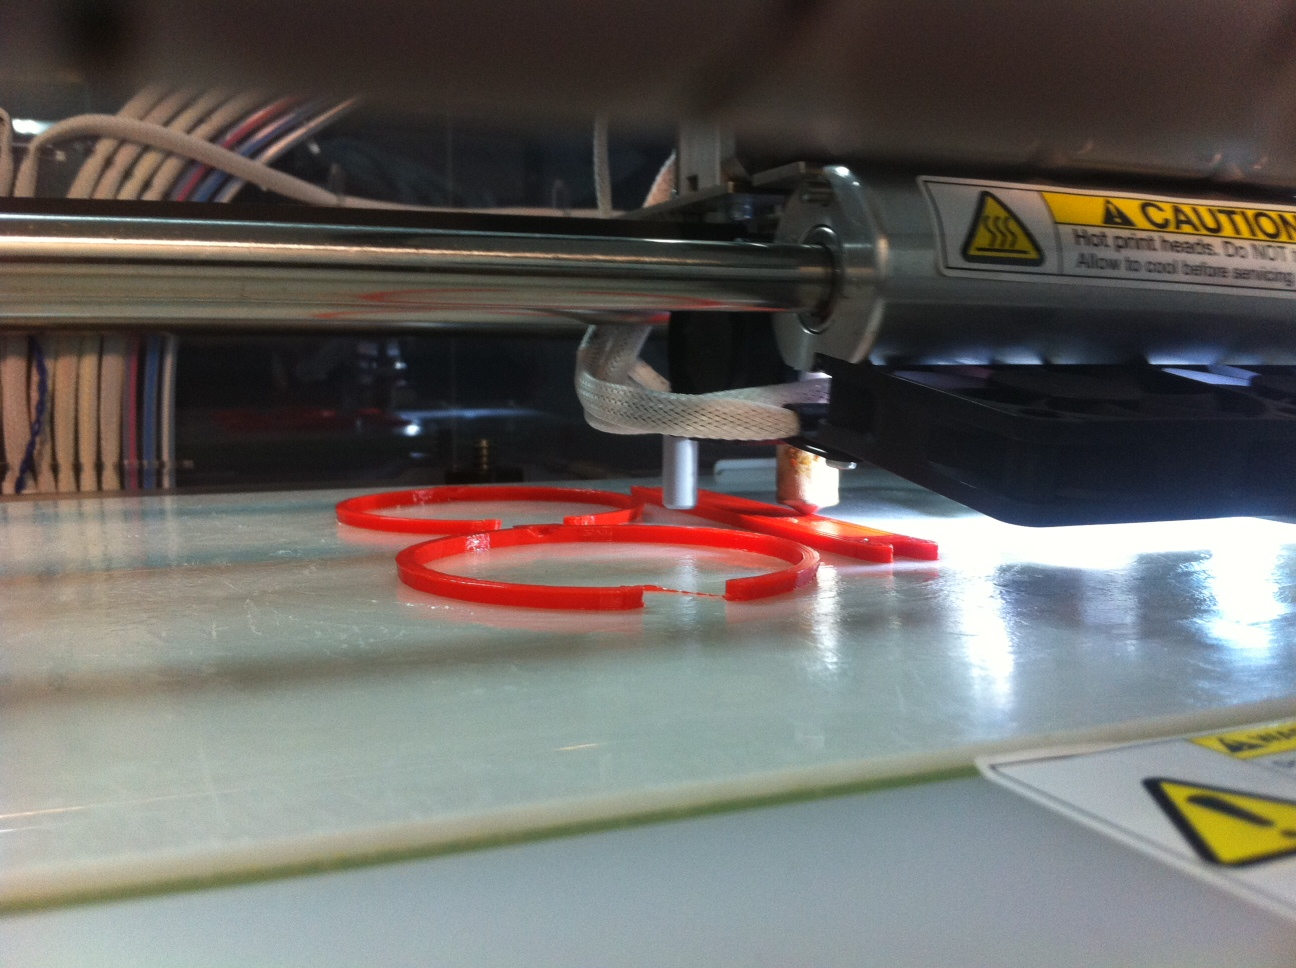 TWI acquires 3D printer capable of printing polymer material